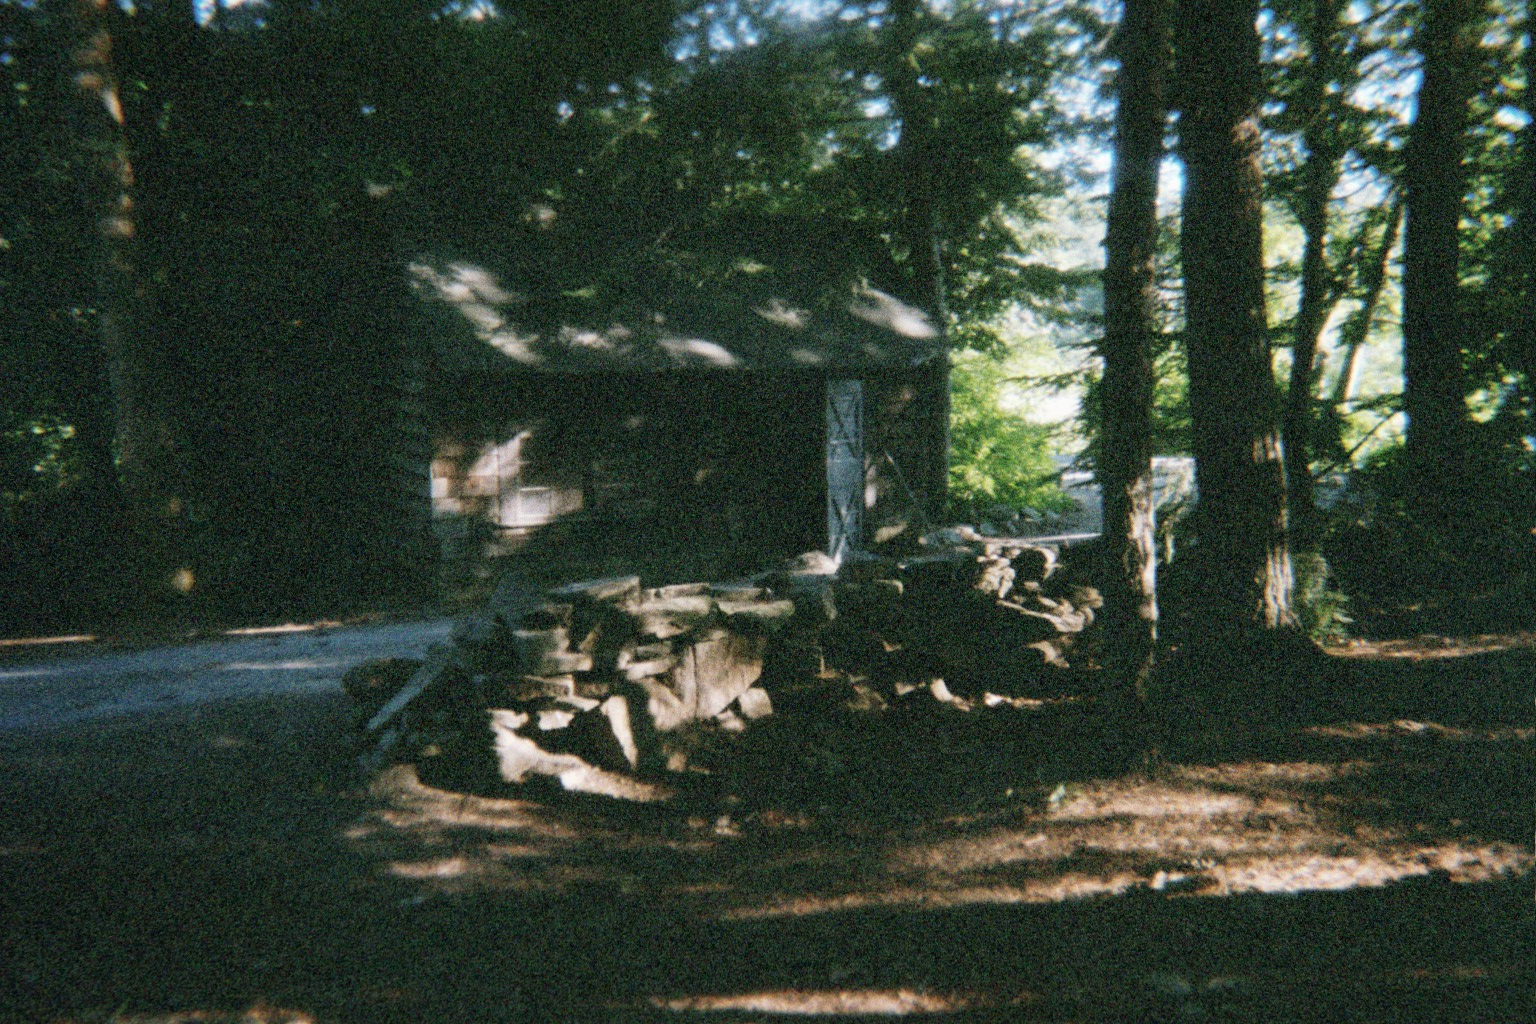 Neddie's Cabin view from back of the house facing the road